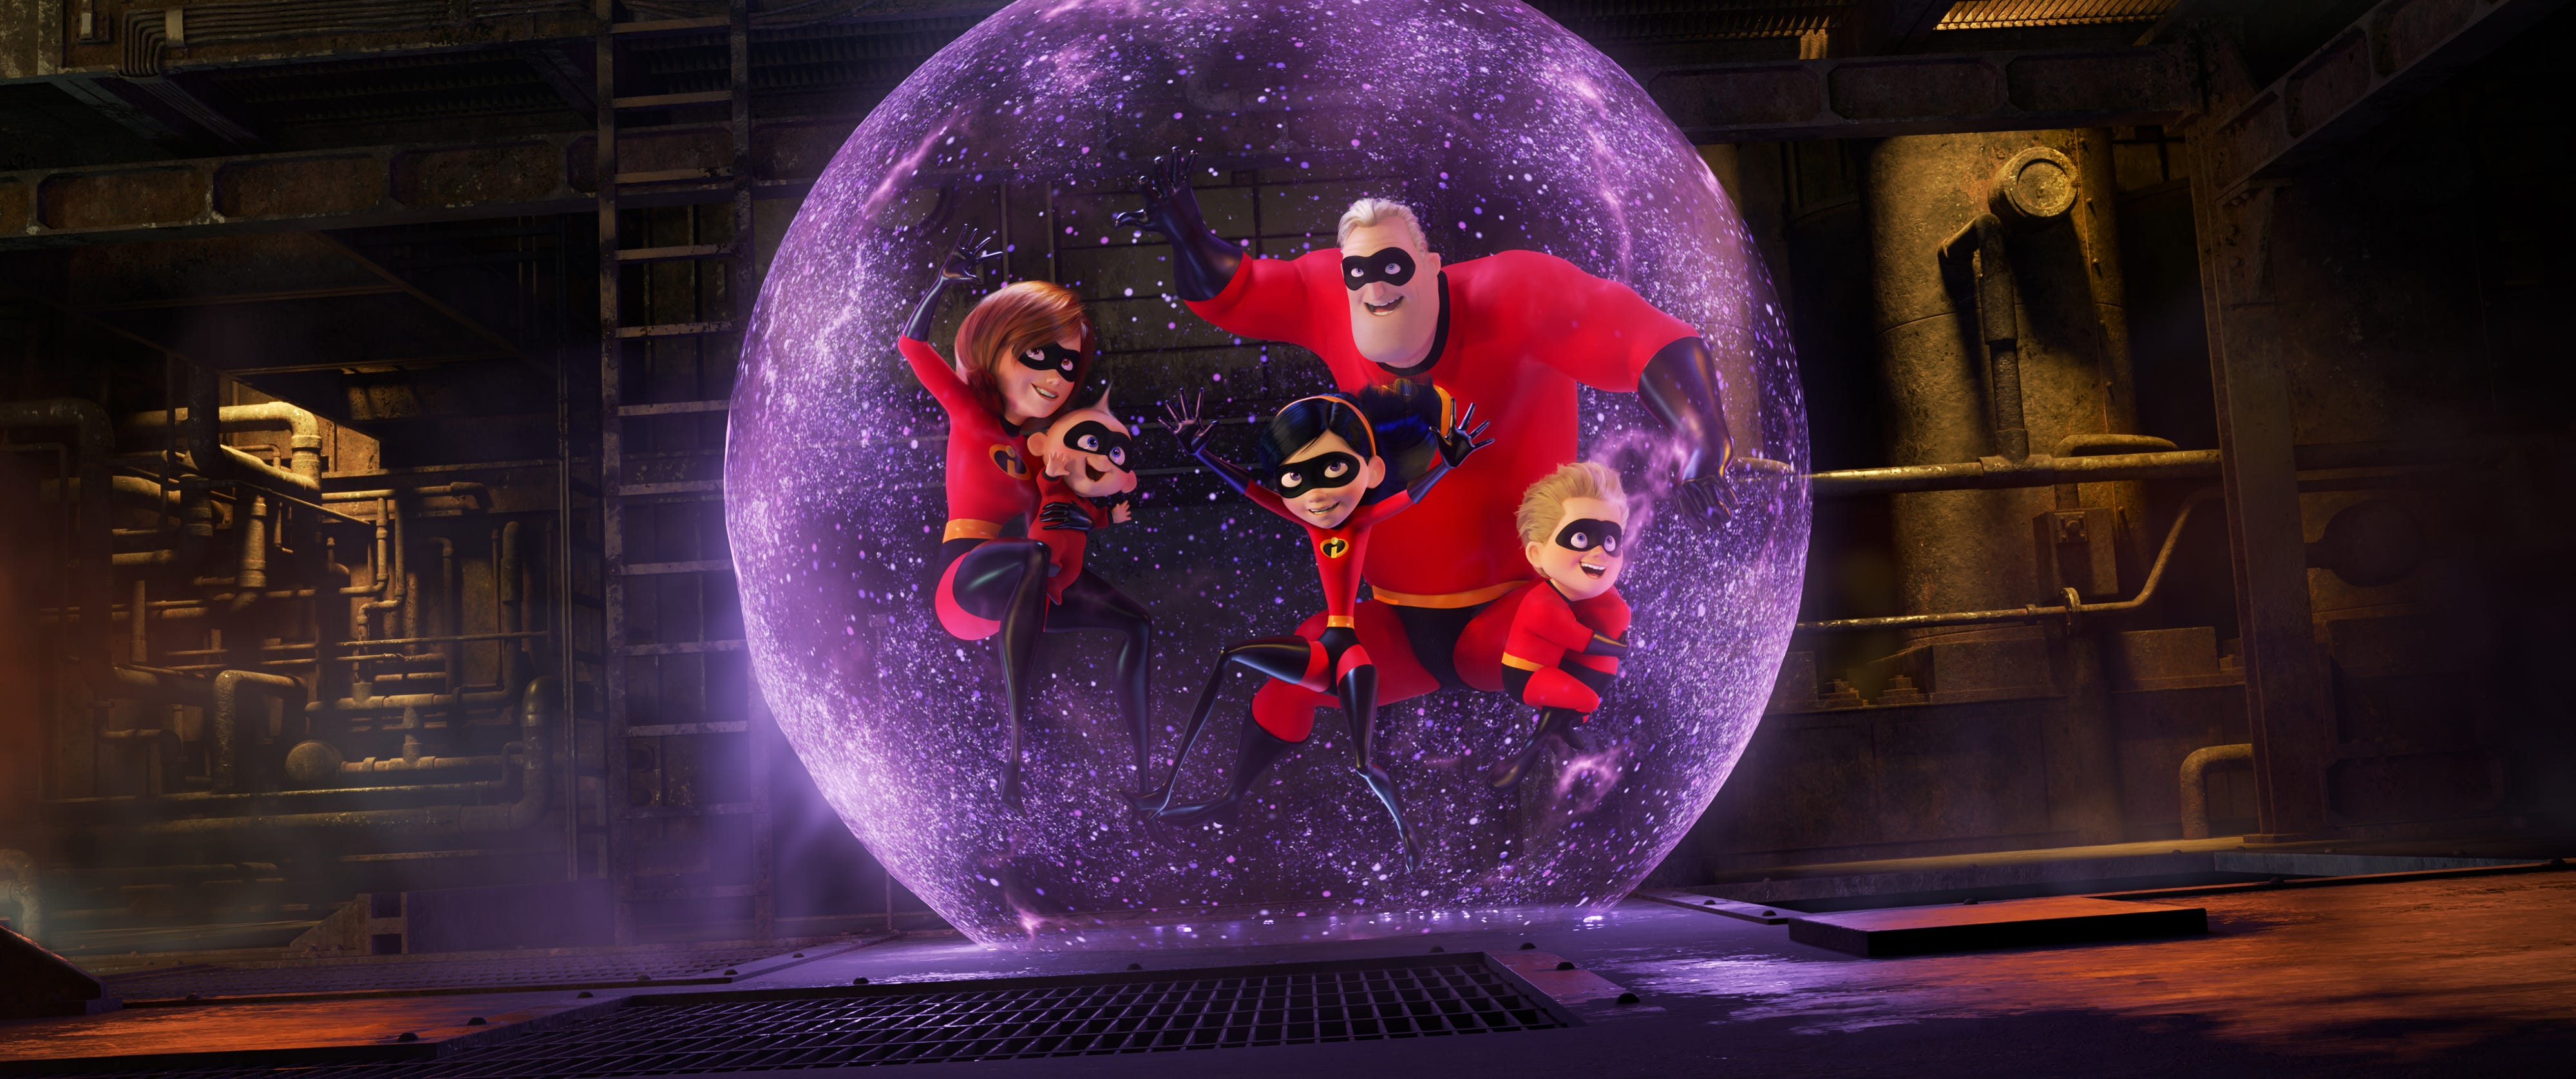 e87849d09 Incredibles 2' star Elastigirl is 'thicc': Why that's a good thing